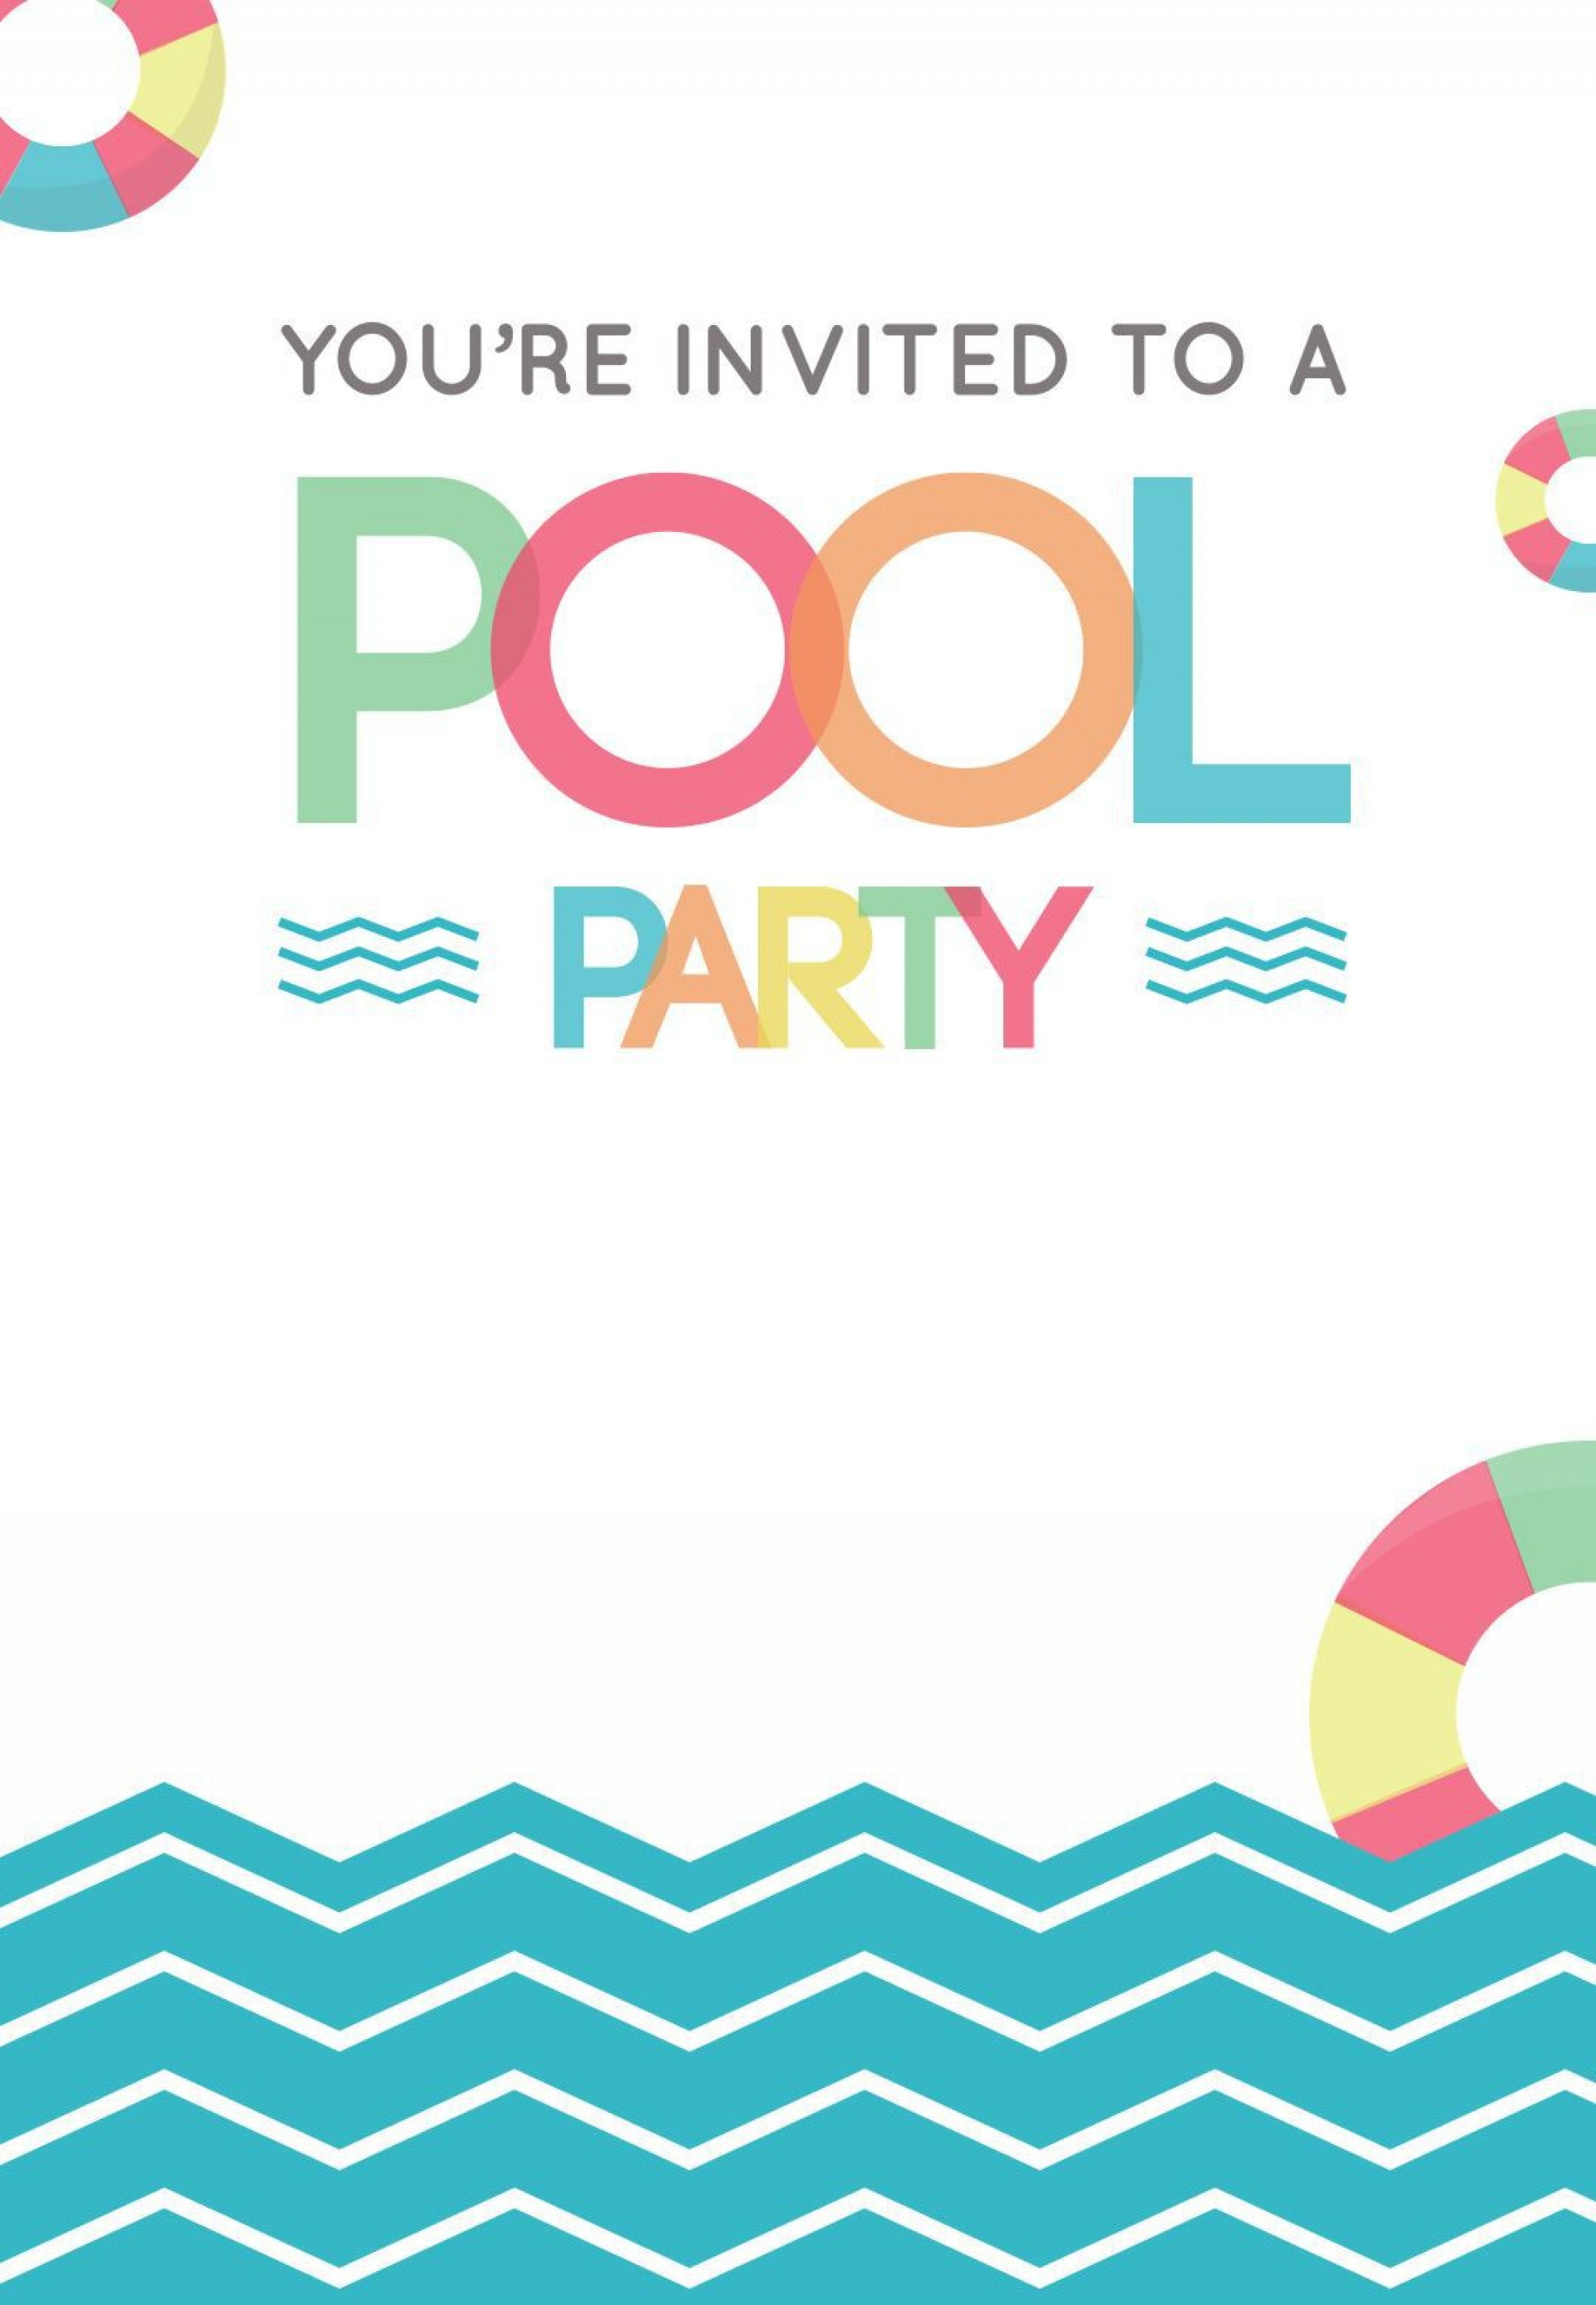 002 Fearsome Free Pool Party Invitation Template Printable Image  Card Summer1920